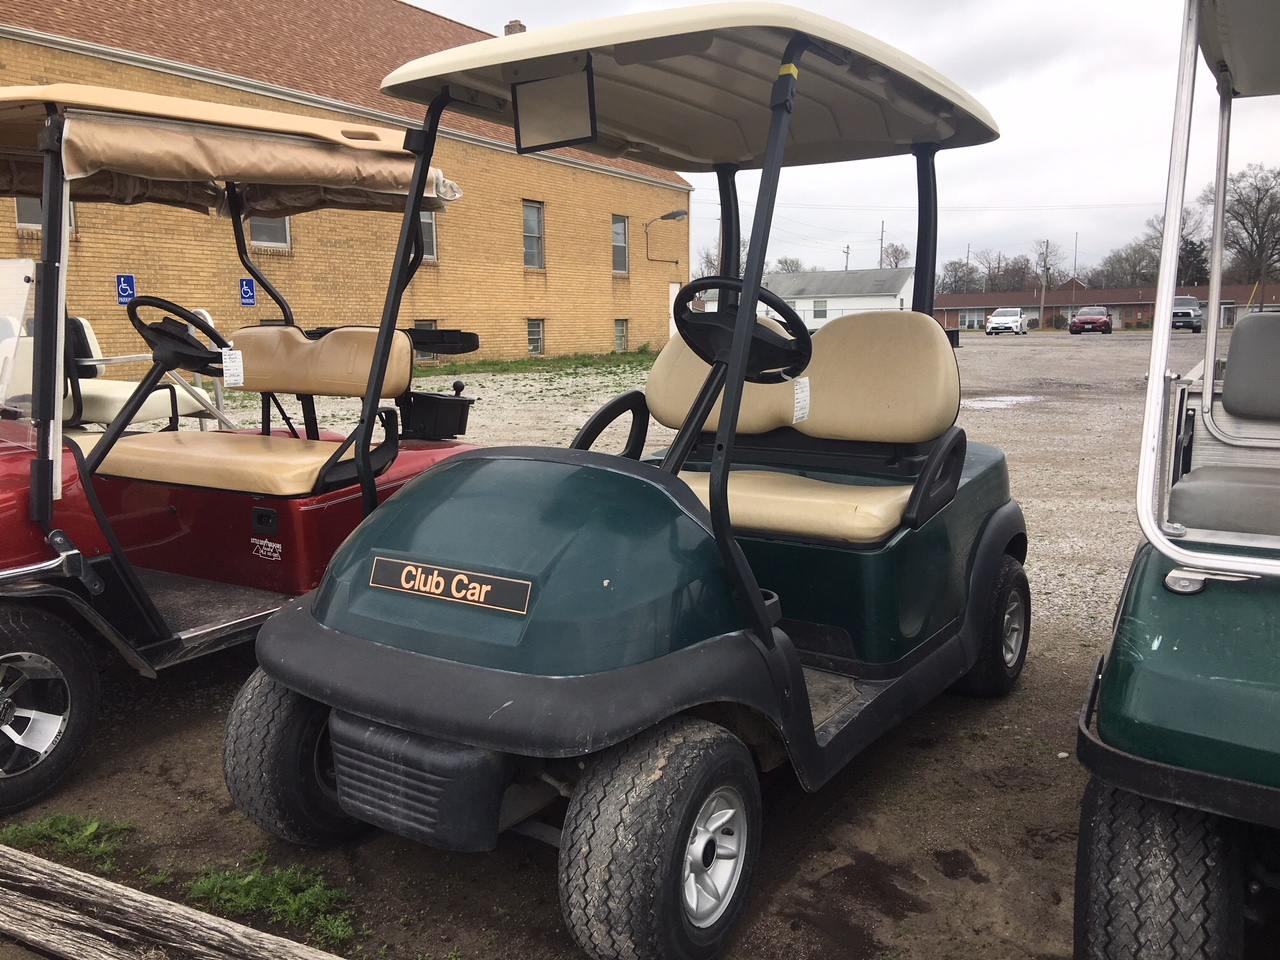 2012 Club Car Precedent ELECTRIC Golf Cart Hunter Green $3995